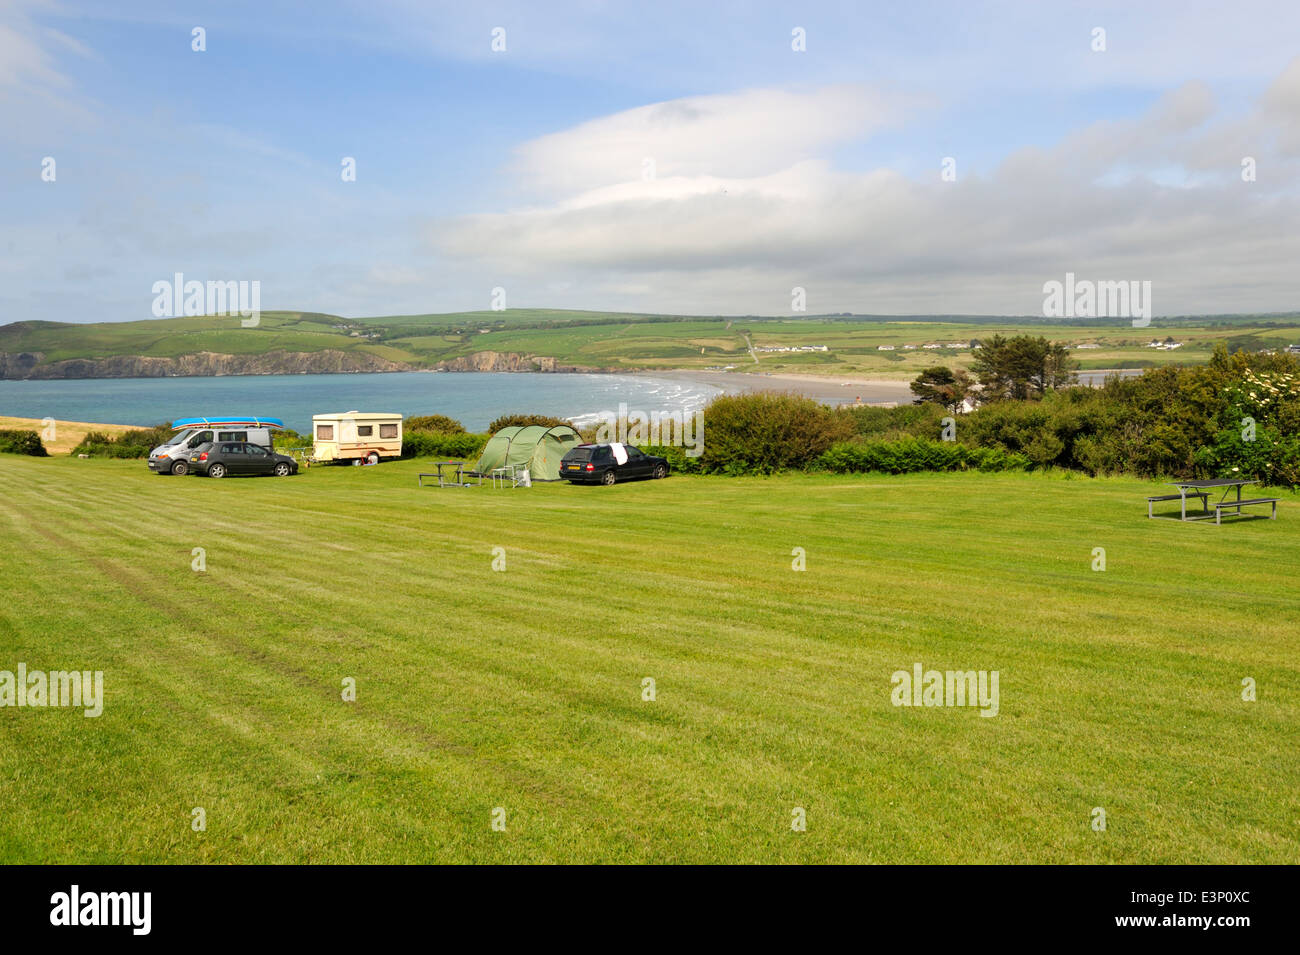 Beach Caravan Park Stock Photos & Beach Caravan Park Stock Images ...